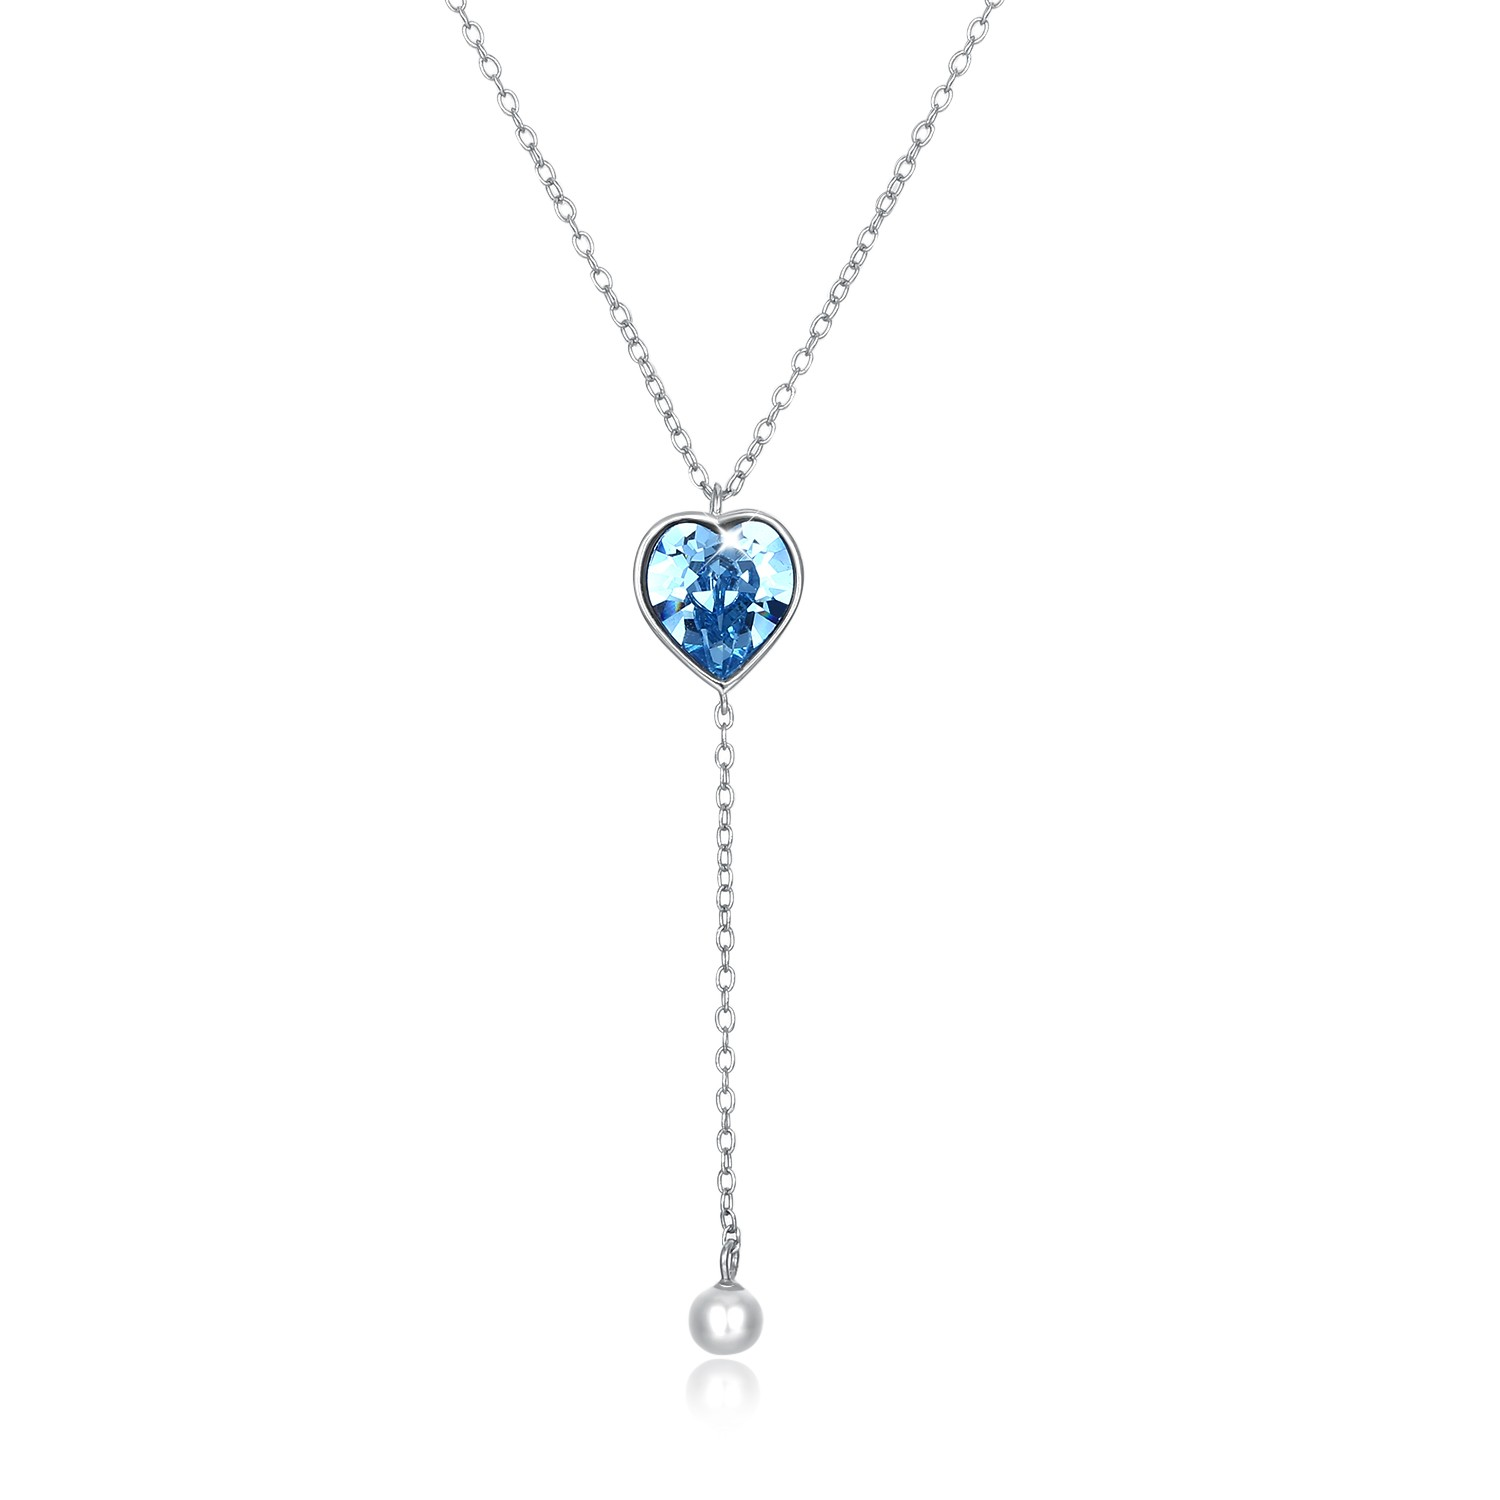 Tinnivi Blue Austrian Crystal With Pearl Sterling Silver Pendant Necklace